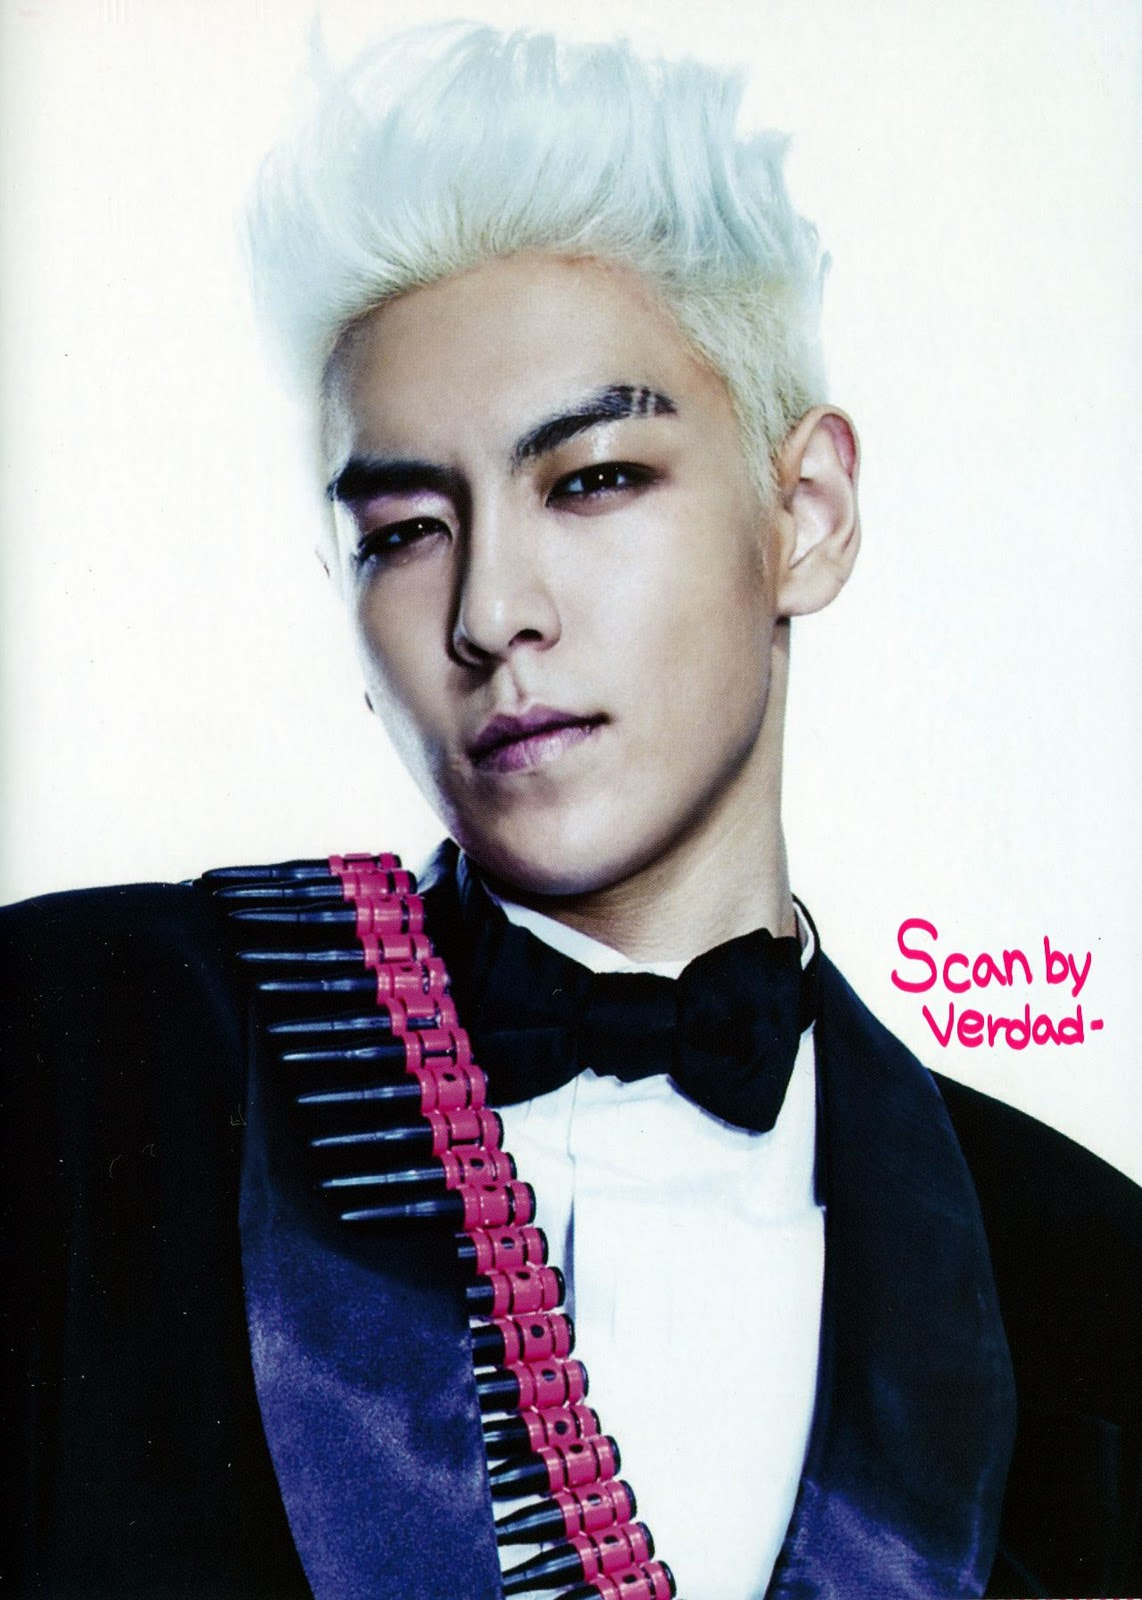 Best Popular Celebrities Most Popular Celebrities: Freaksology: [PHOTOS] Official Pictures Of GD & TOP